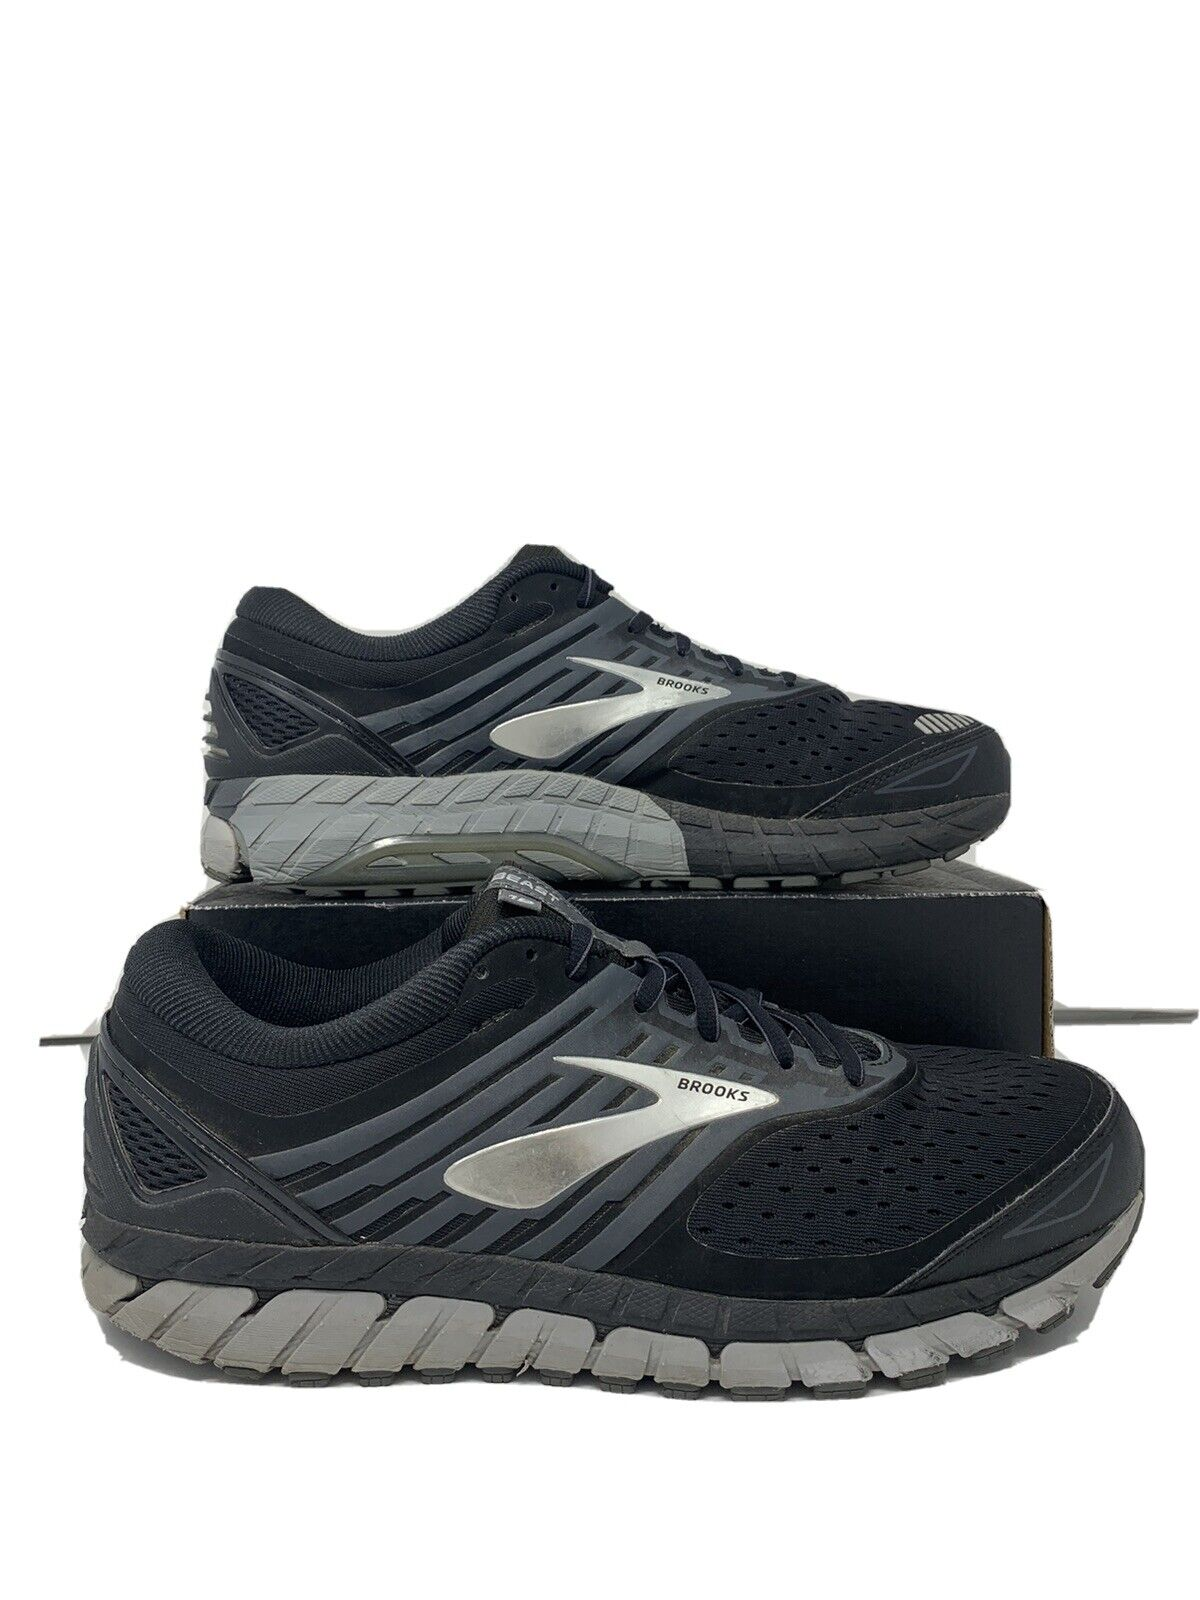 Men's Brooks Beast 18 Running Shoes Black Grey Silver Size 12.5 Wide (2E)